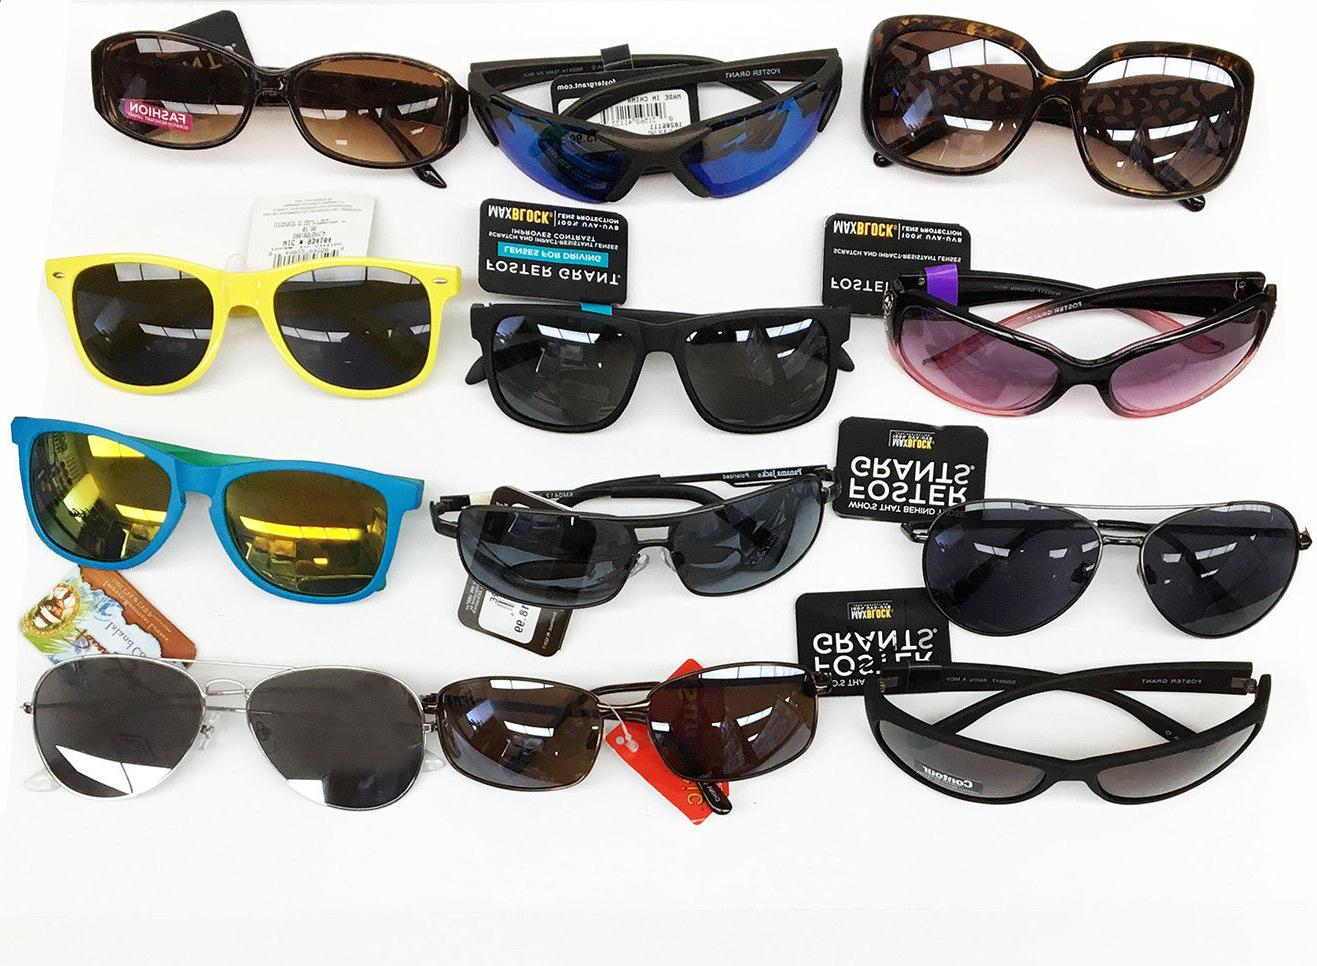 Lot-Of 100 Pairs Of Assorted Adult Men's & Women's Sungl